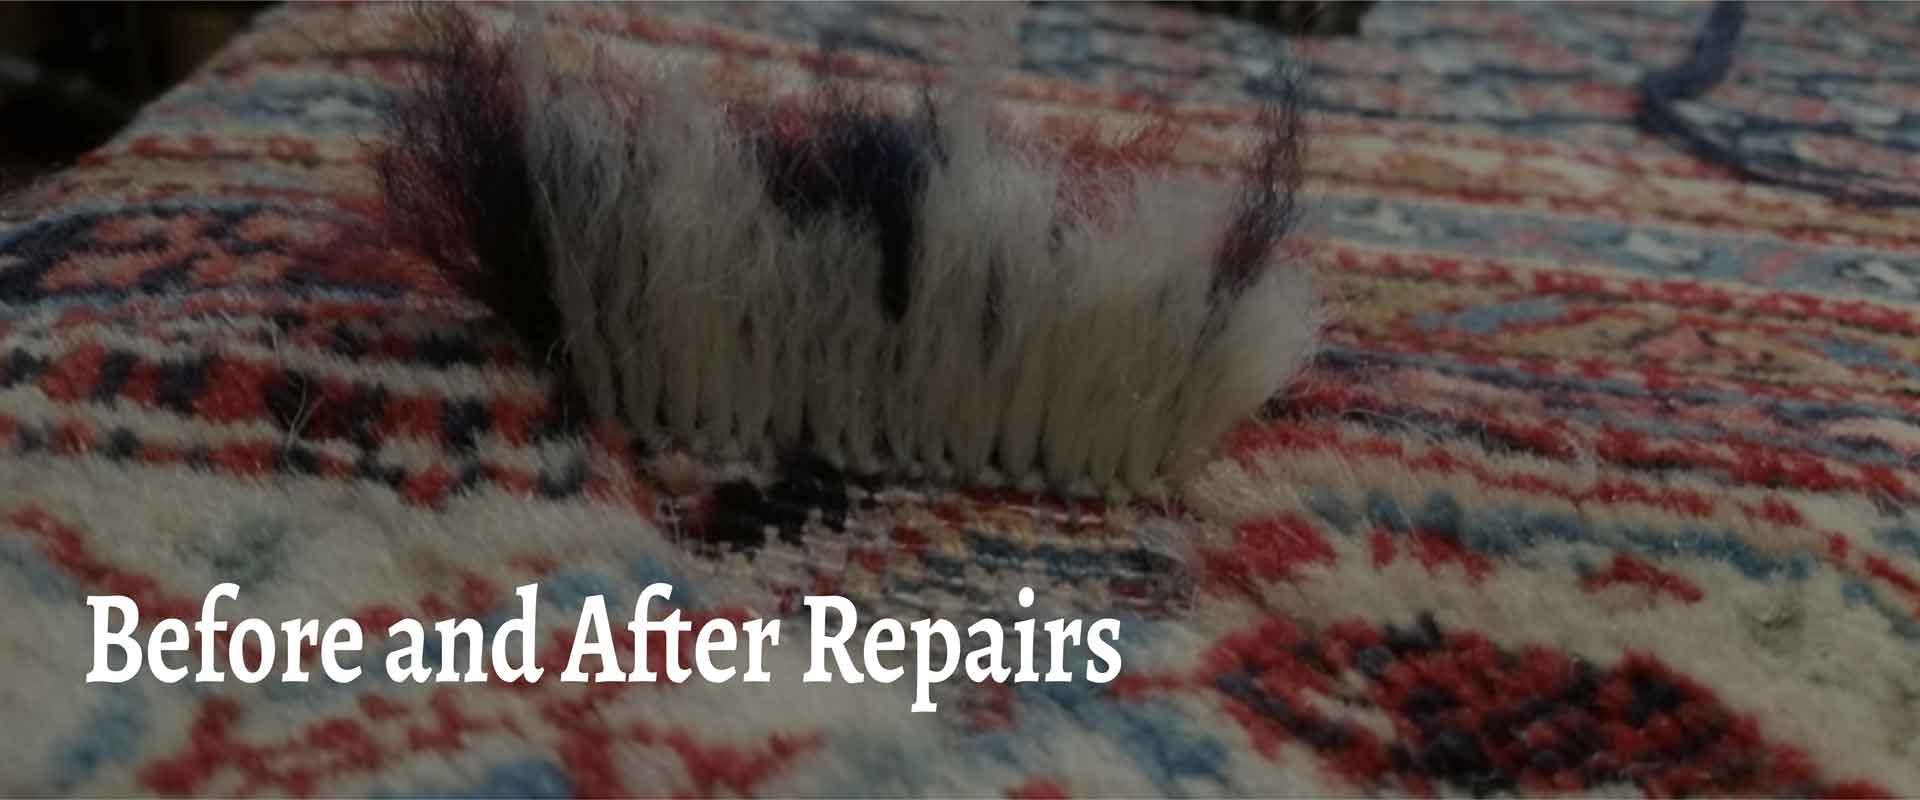 before-and-after-repairs-header-pic-dark-large